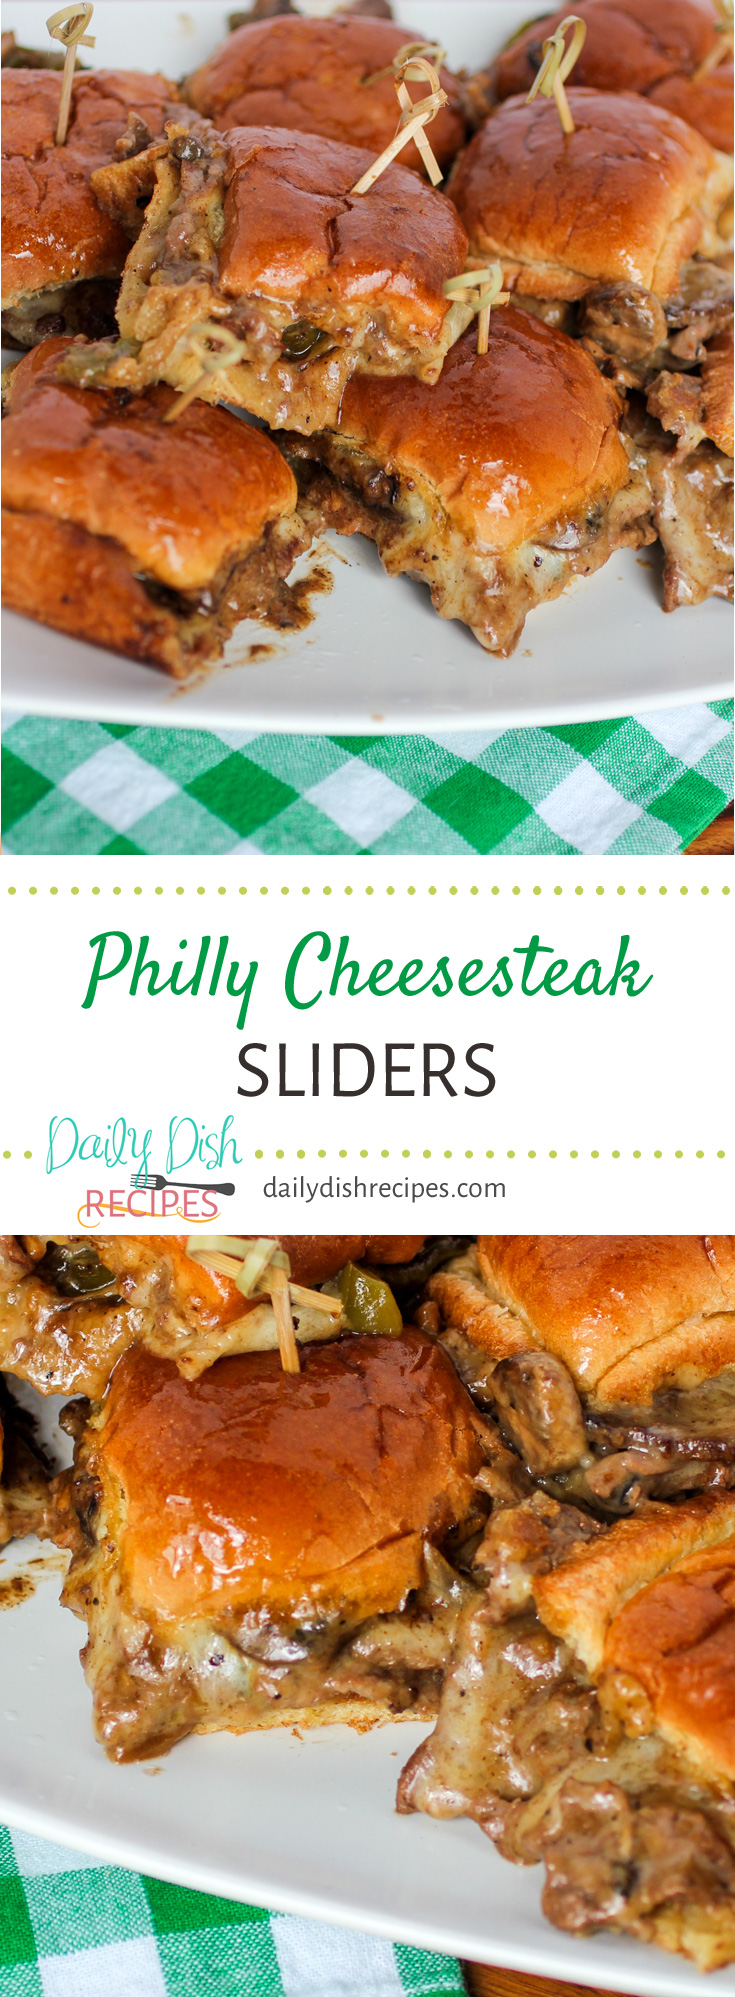 One of our absolute favorite gameday recipes! These Philly Cheesesteak Sliders are literally melt in your mouth magical bites of happiness. So much flavor, melted cheese. Perfect for ANY get together and seriously the perfect party food!